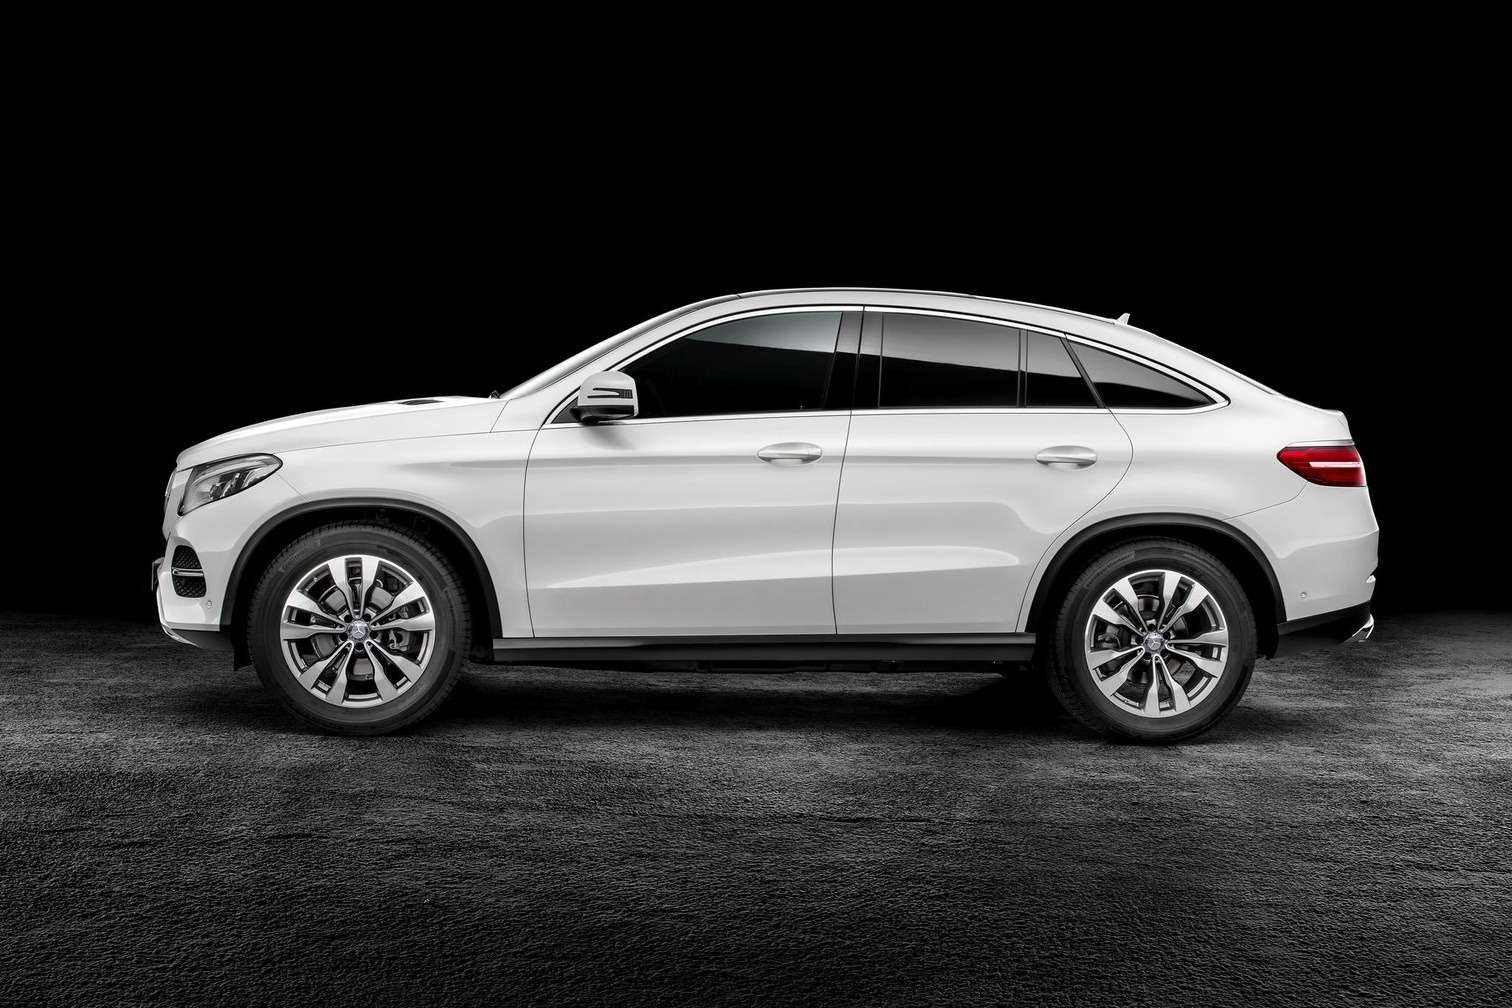 Mercedes-Benz-GLE_Coupe_2016_1600x1200_wallpaper_02